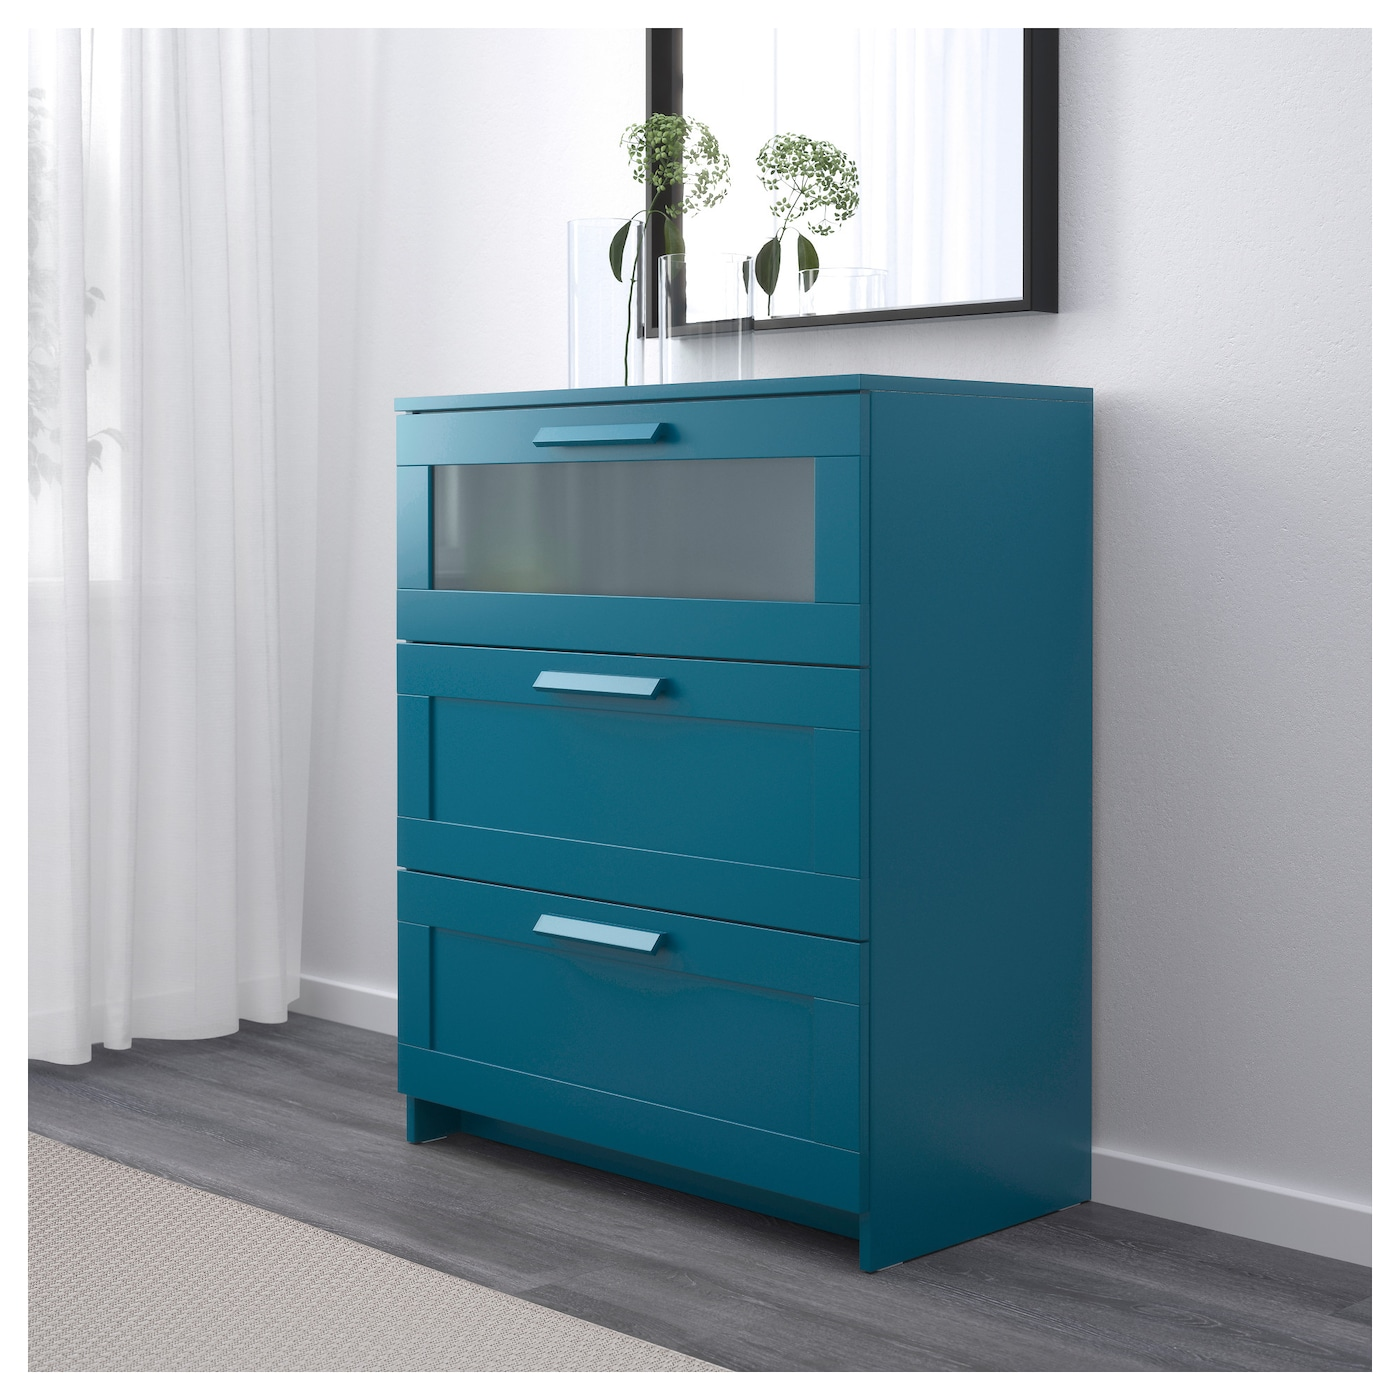 Ikea Brimnes Chest Of  Drawers Smooth Running Drawers With Pull Out Stop